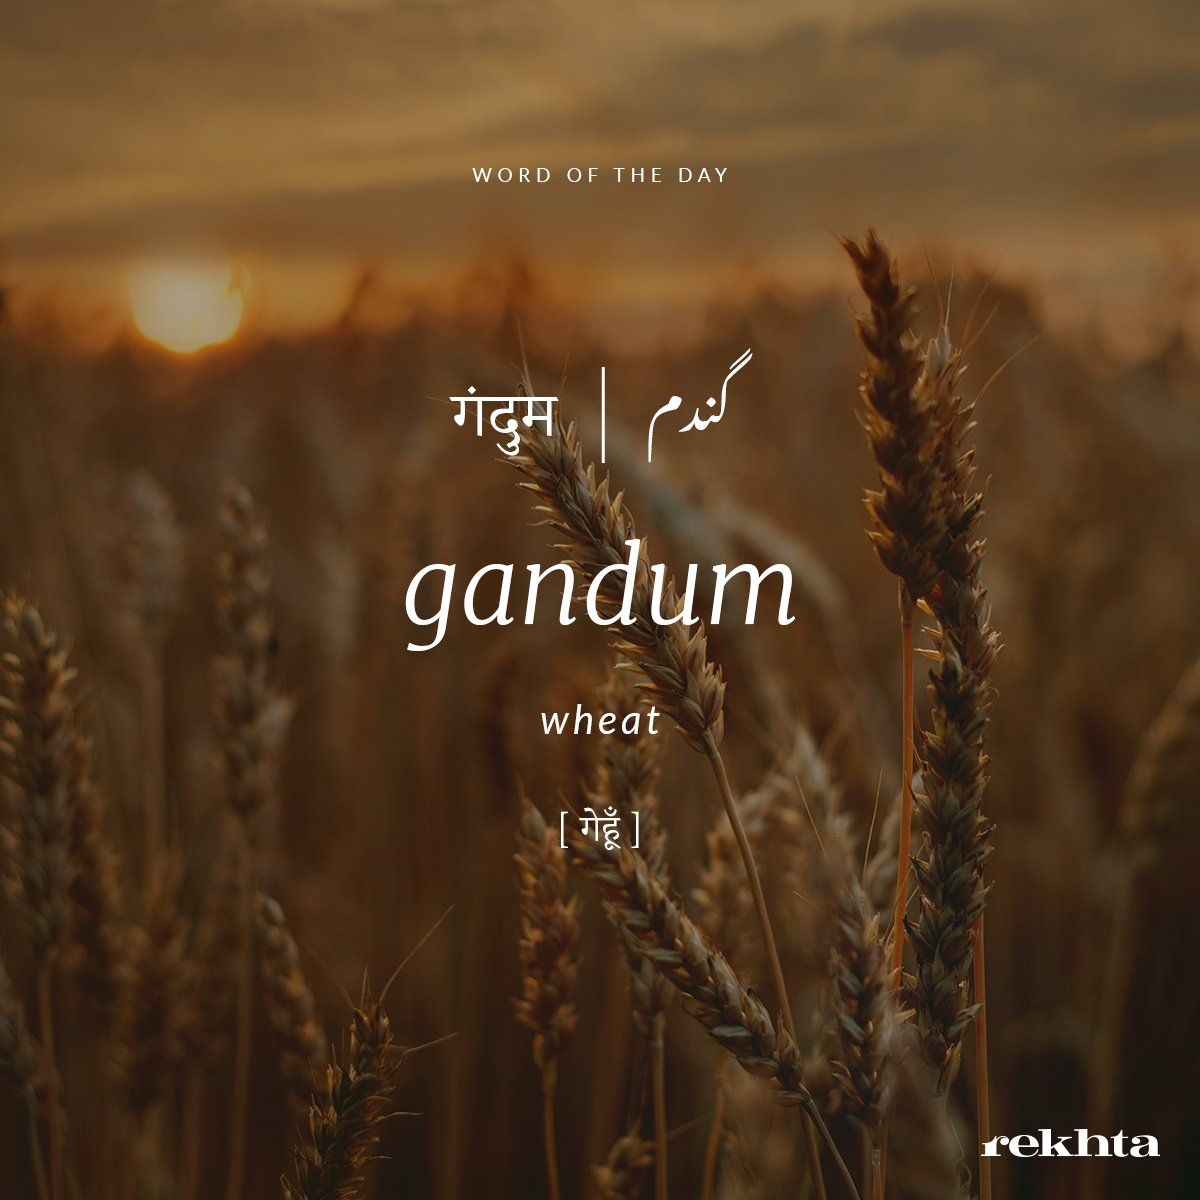 Rekhta on in 2020 Urdu words with meaning, Urdu words